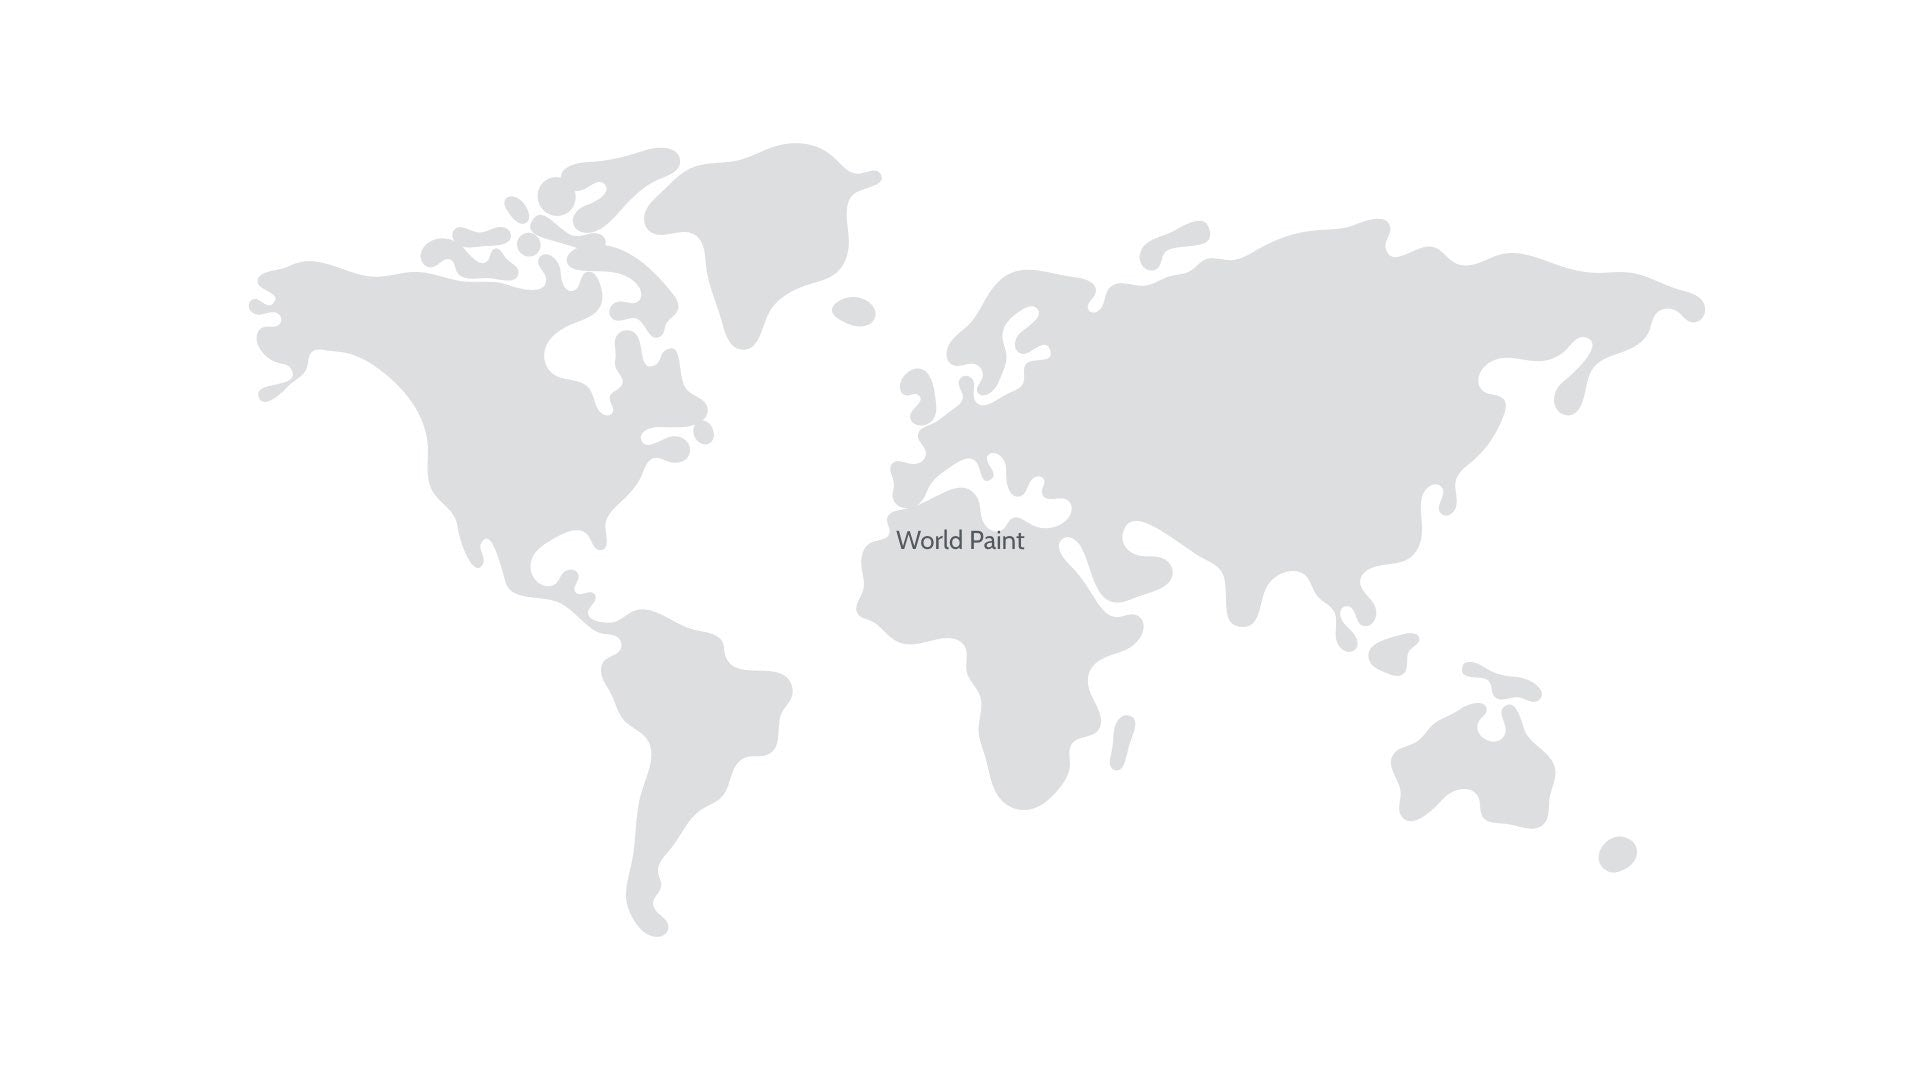 World Map for PowerPoint & Keynote - Presentation Shop